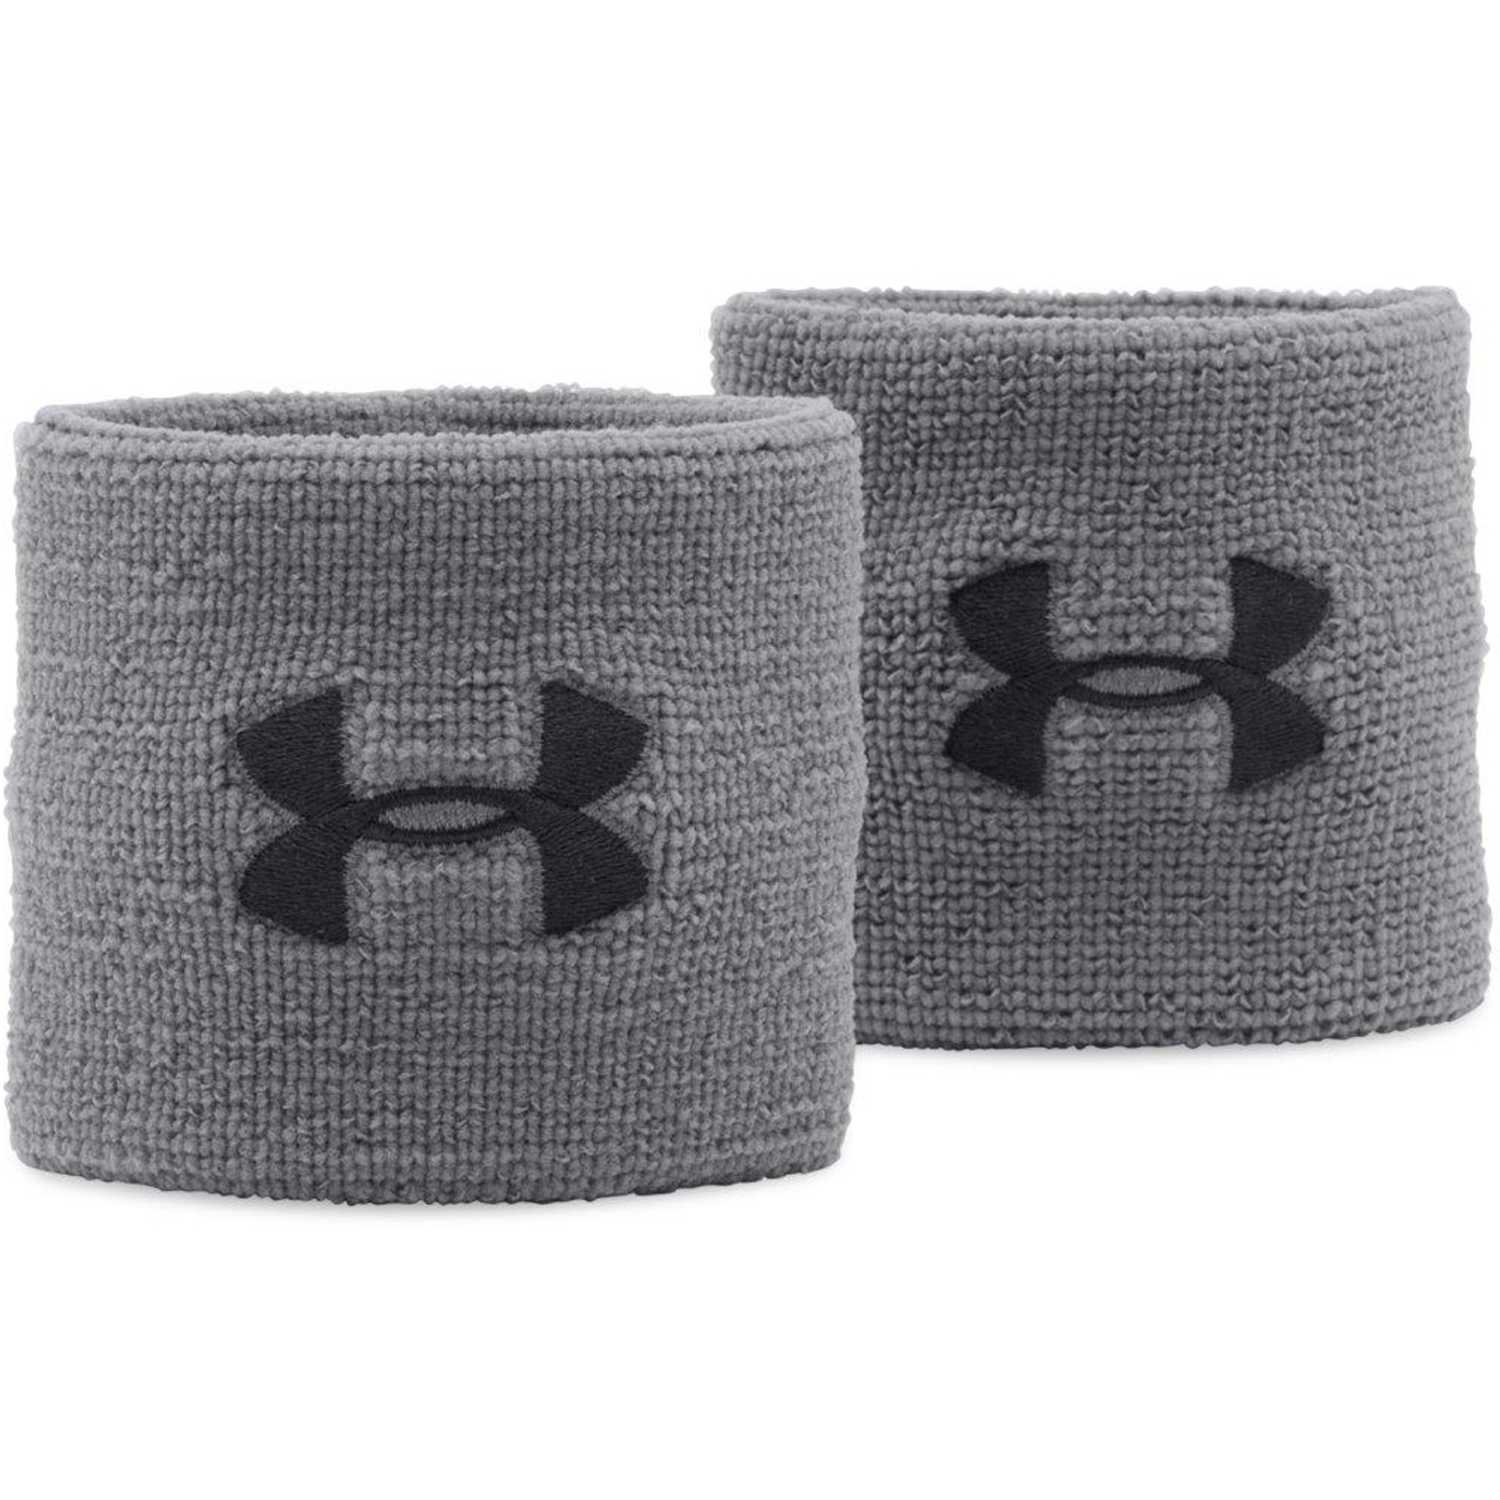 Under Armour ua performance wristbands Gris / negro Vinchas y muñequeras anti sudor